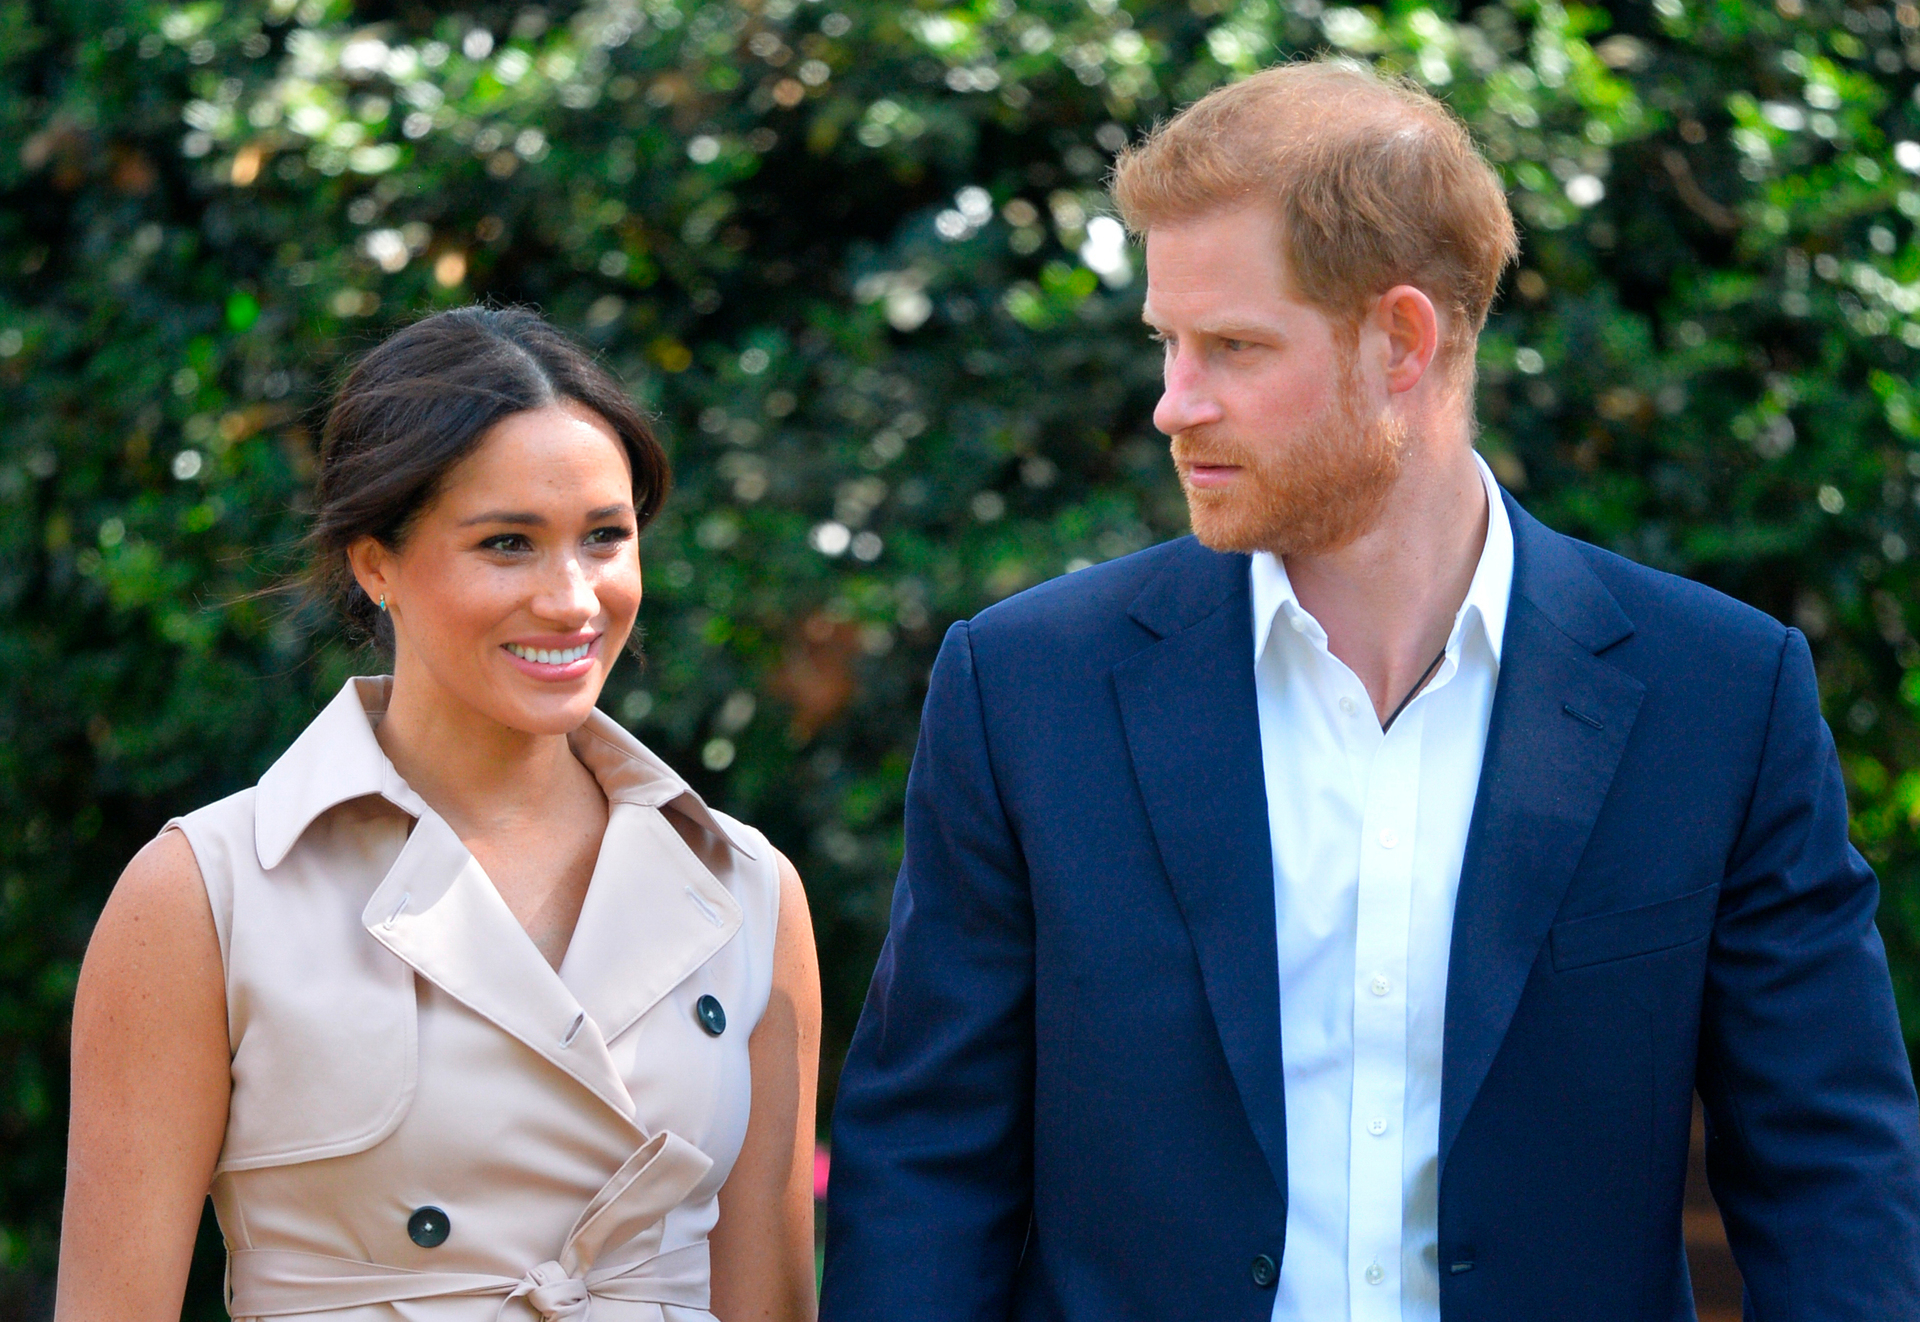 Hawkesby: Big whiff of hypocrisy in Harry and Meghan's cry for help